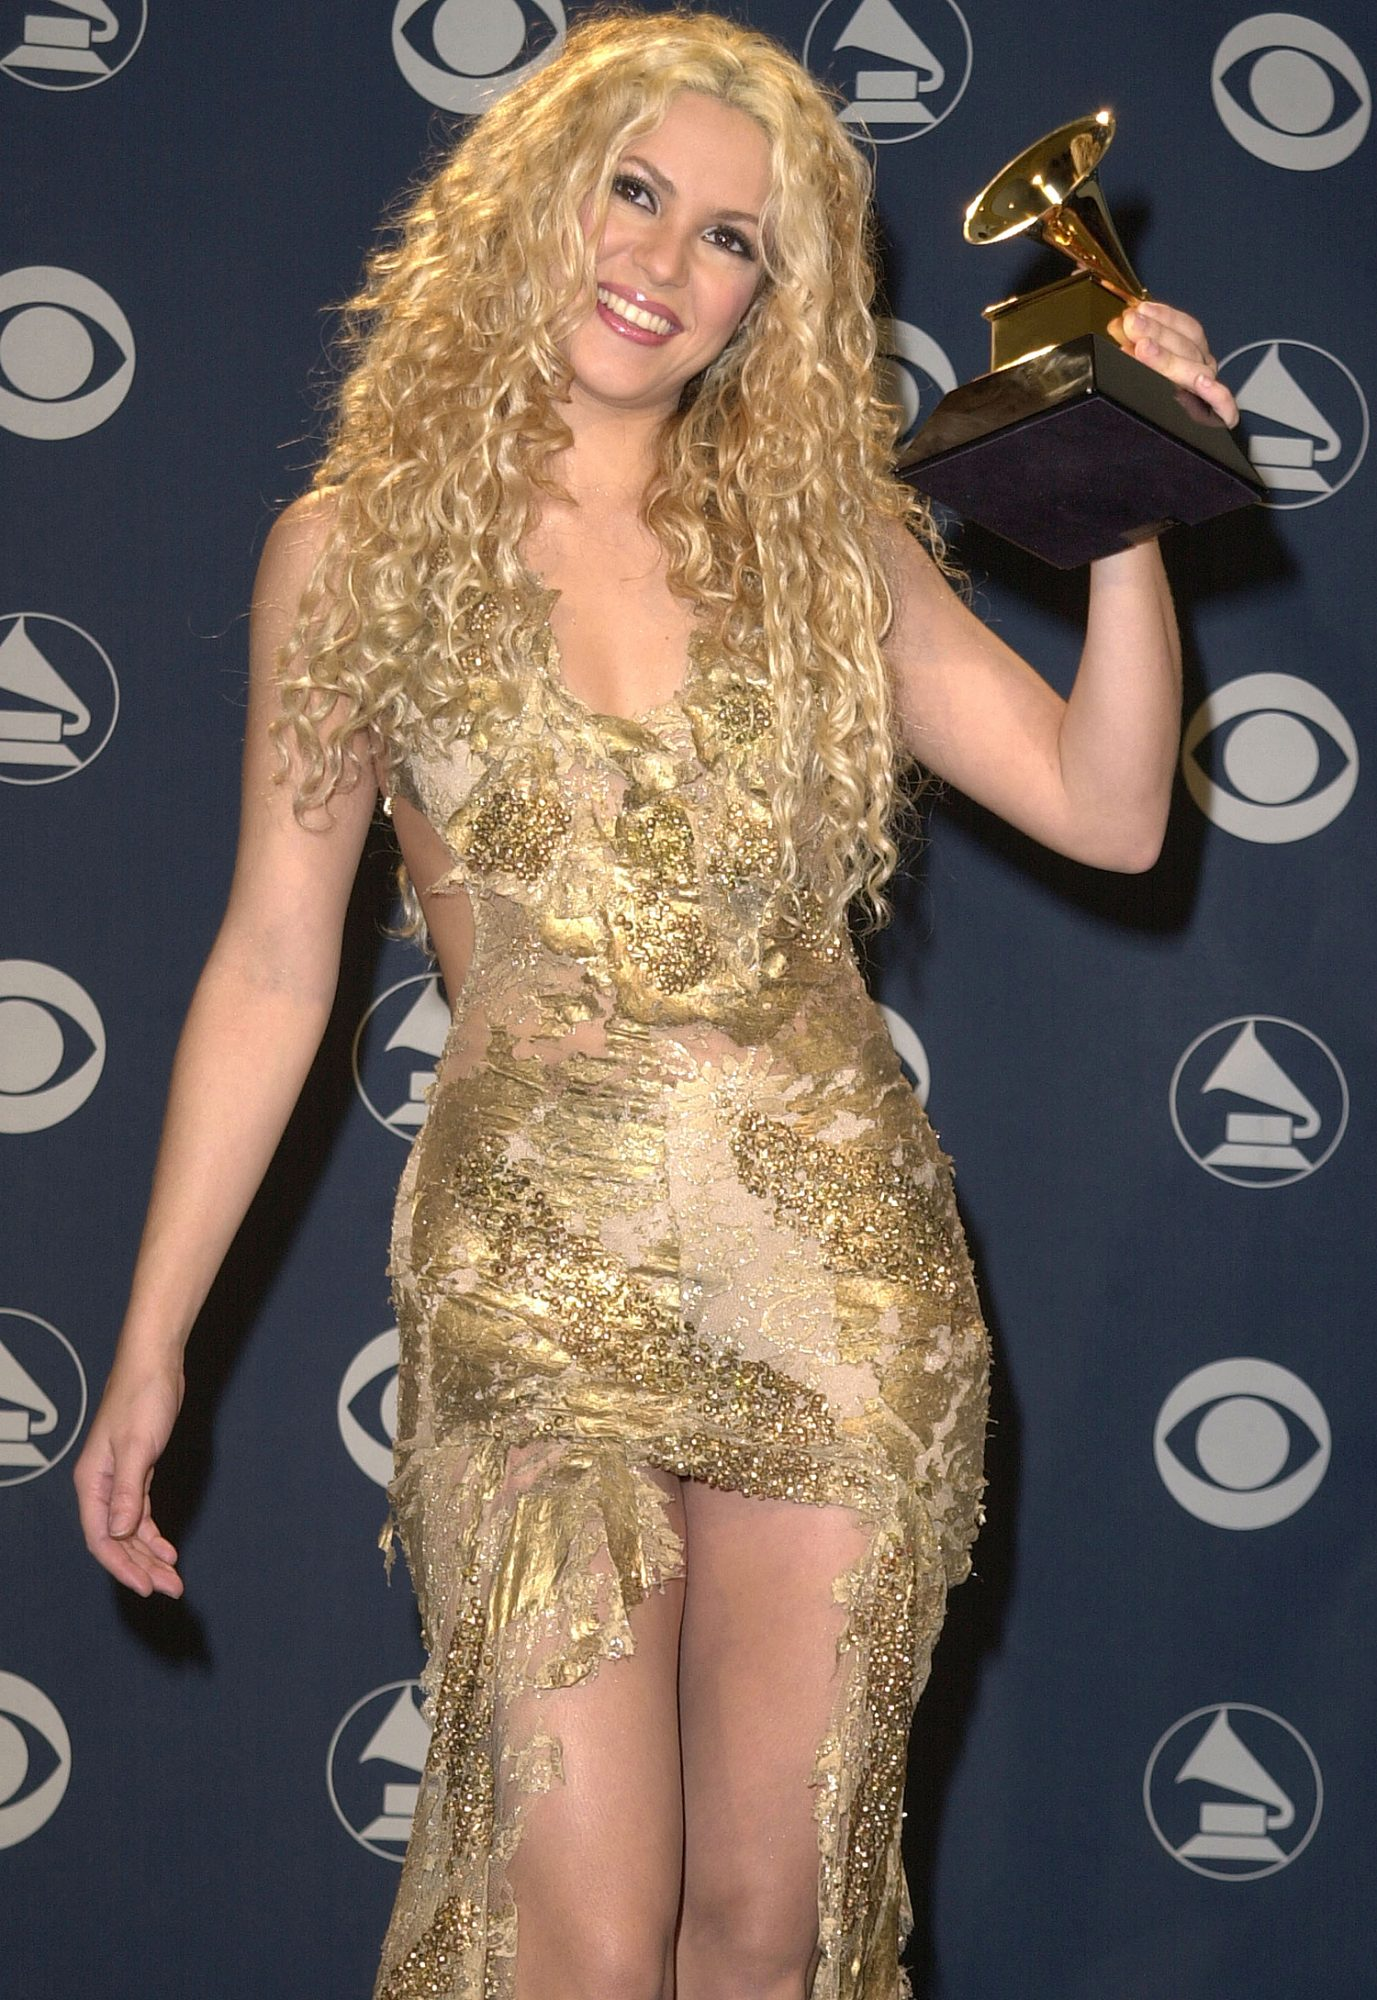 Shakira at the Staples Center in Los Angeles